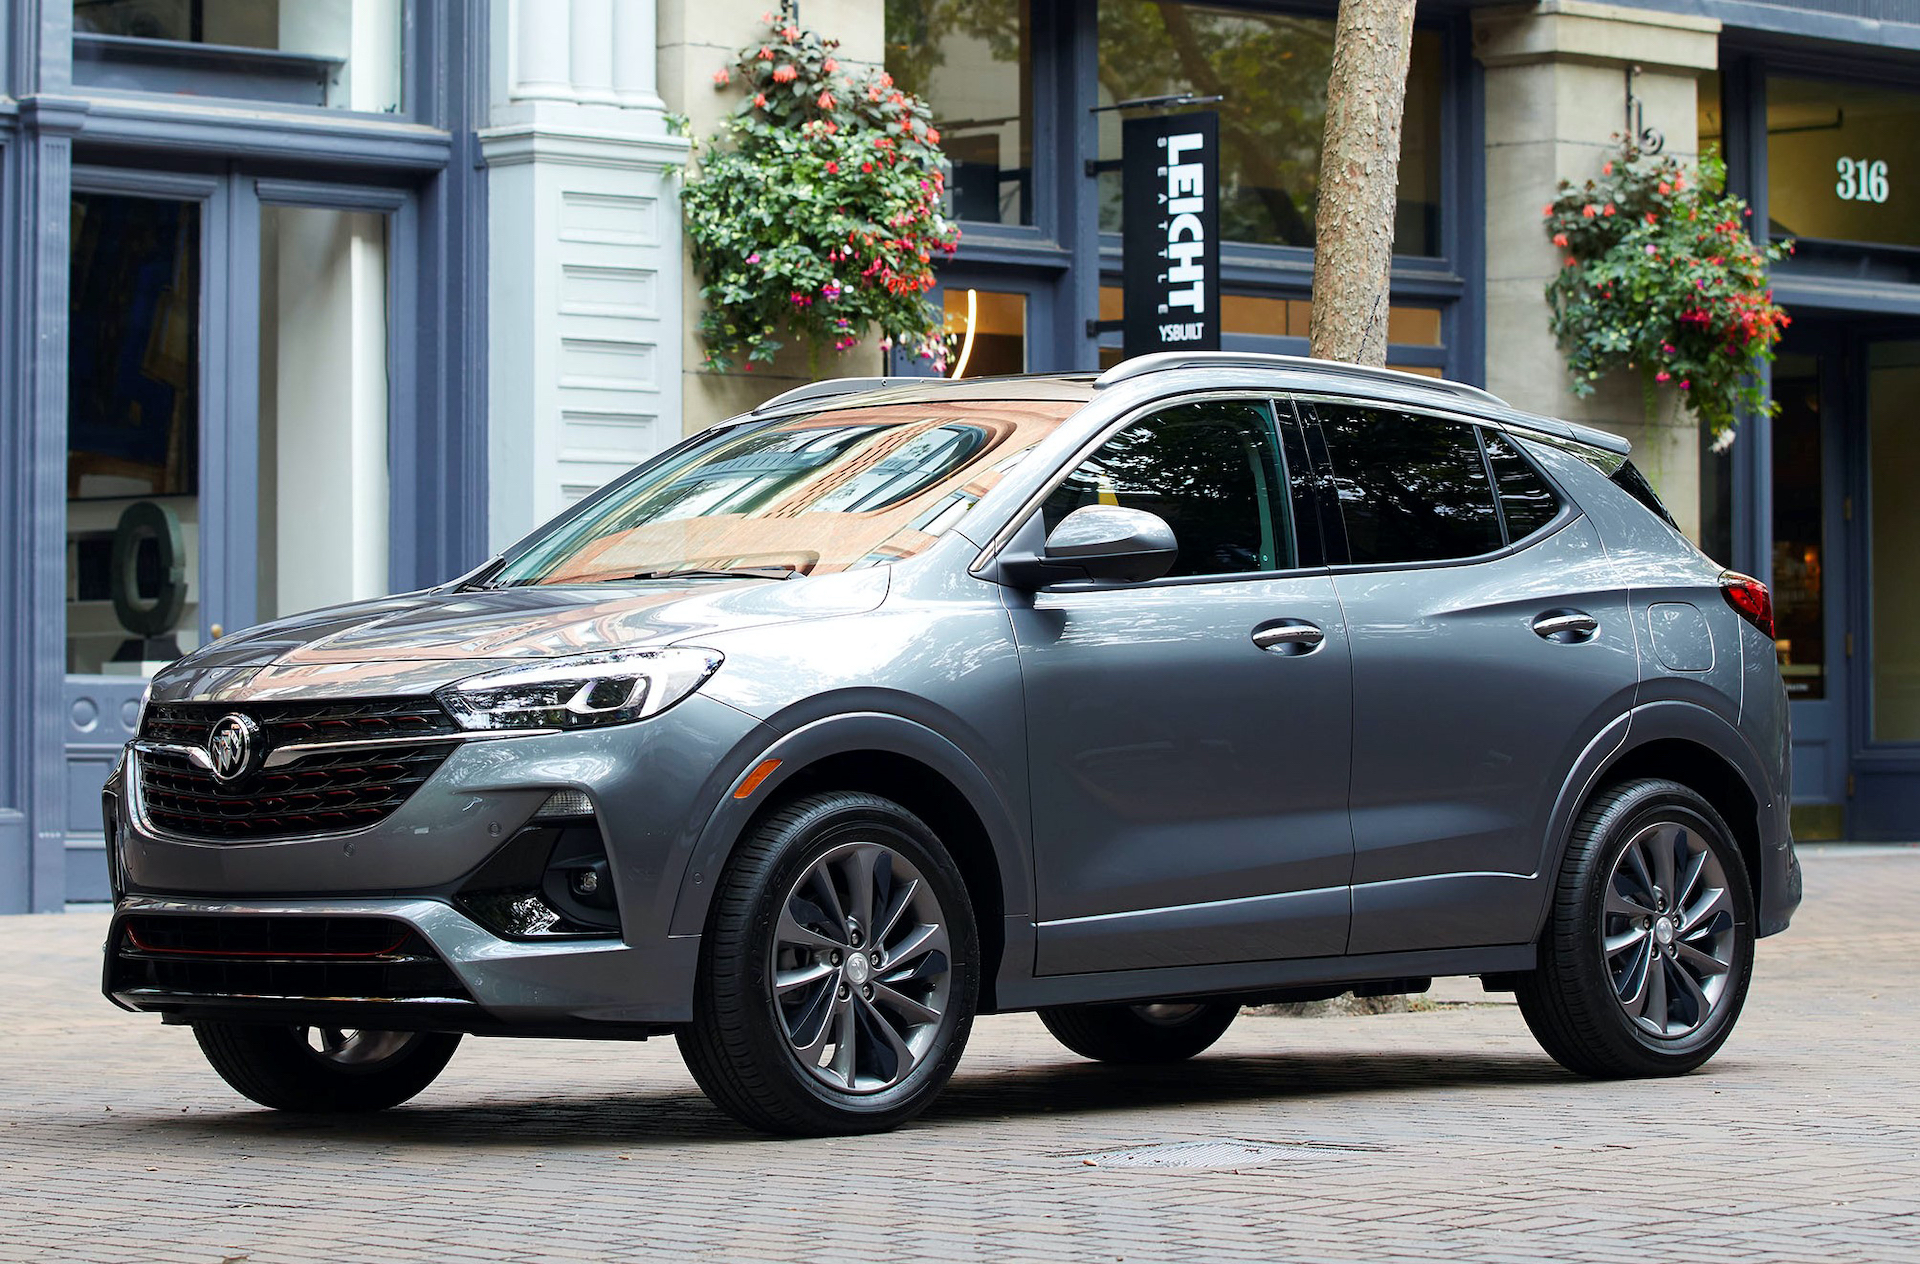 2021 Buick Encore Review, Ratings, Specs, Prices, And Photos New 2021 Buick Encore Gx Used, Weight, 0-60